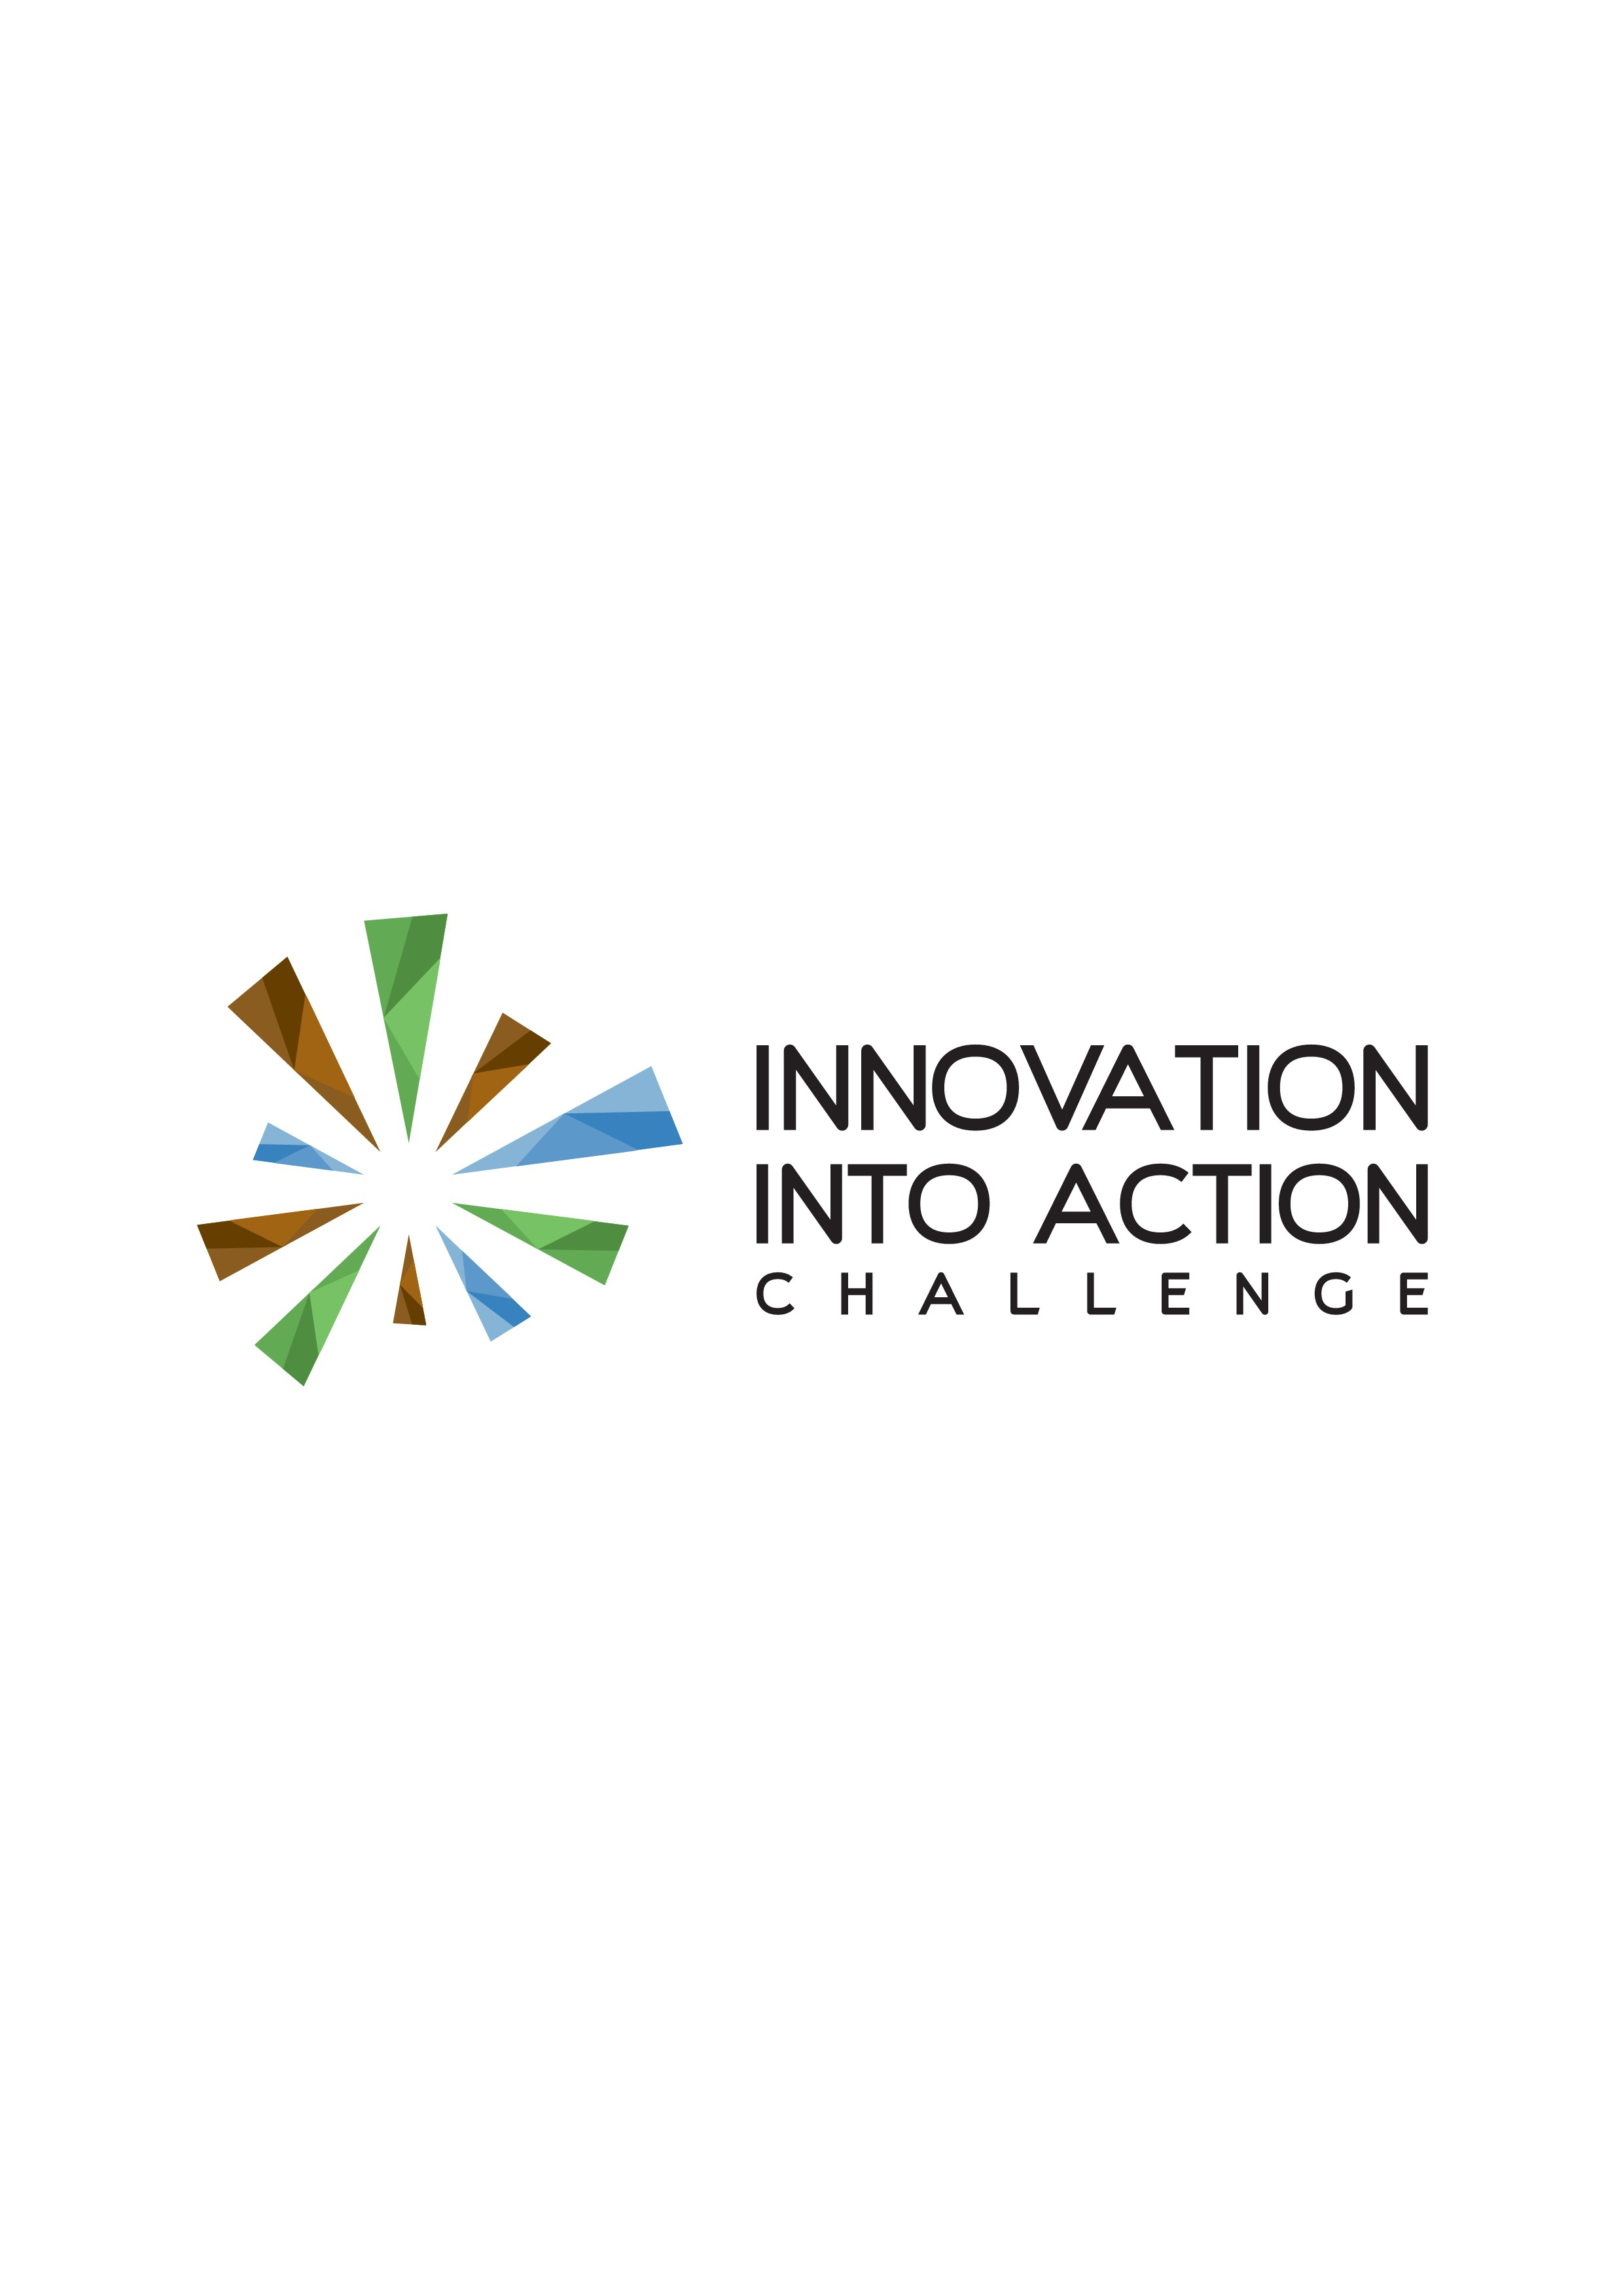 Help design a logo for Challenge that could bring innovations to poor countries!